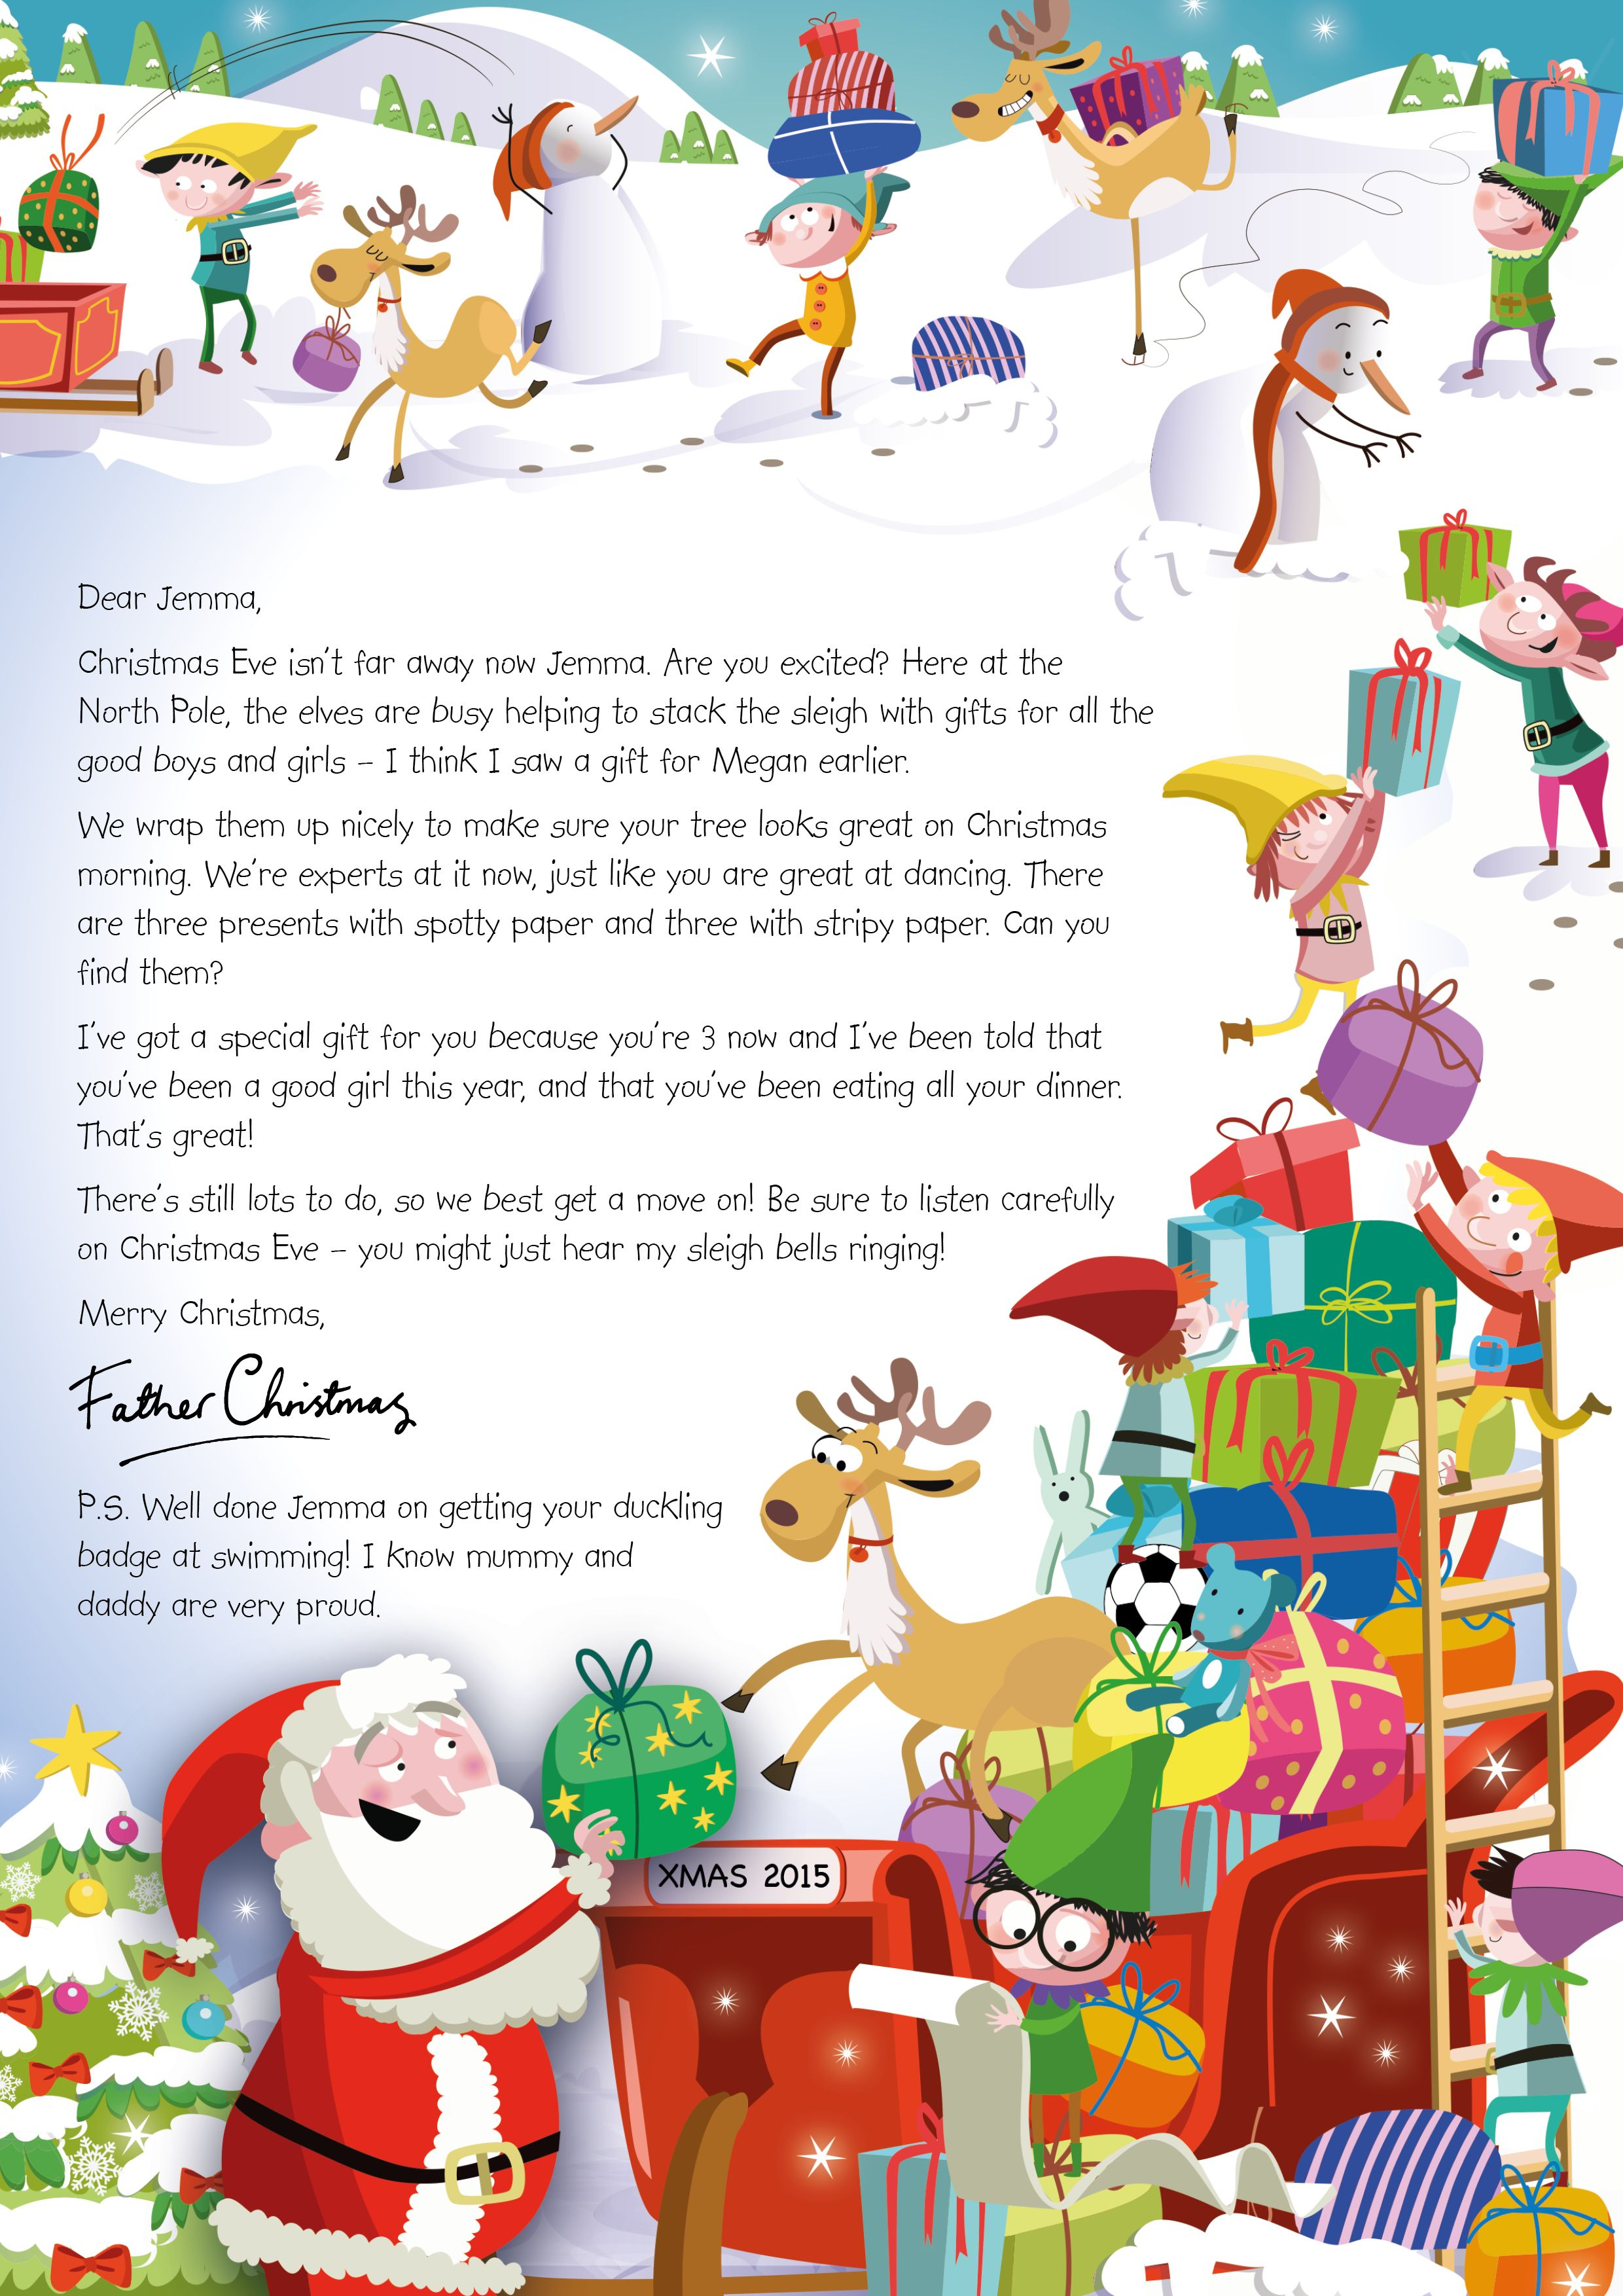 Pin by nspcc on nspcc letter from santa pinterest santa spiritdancerdesigns Image collections